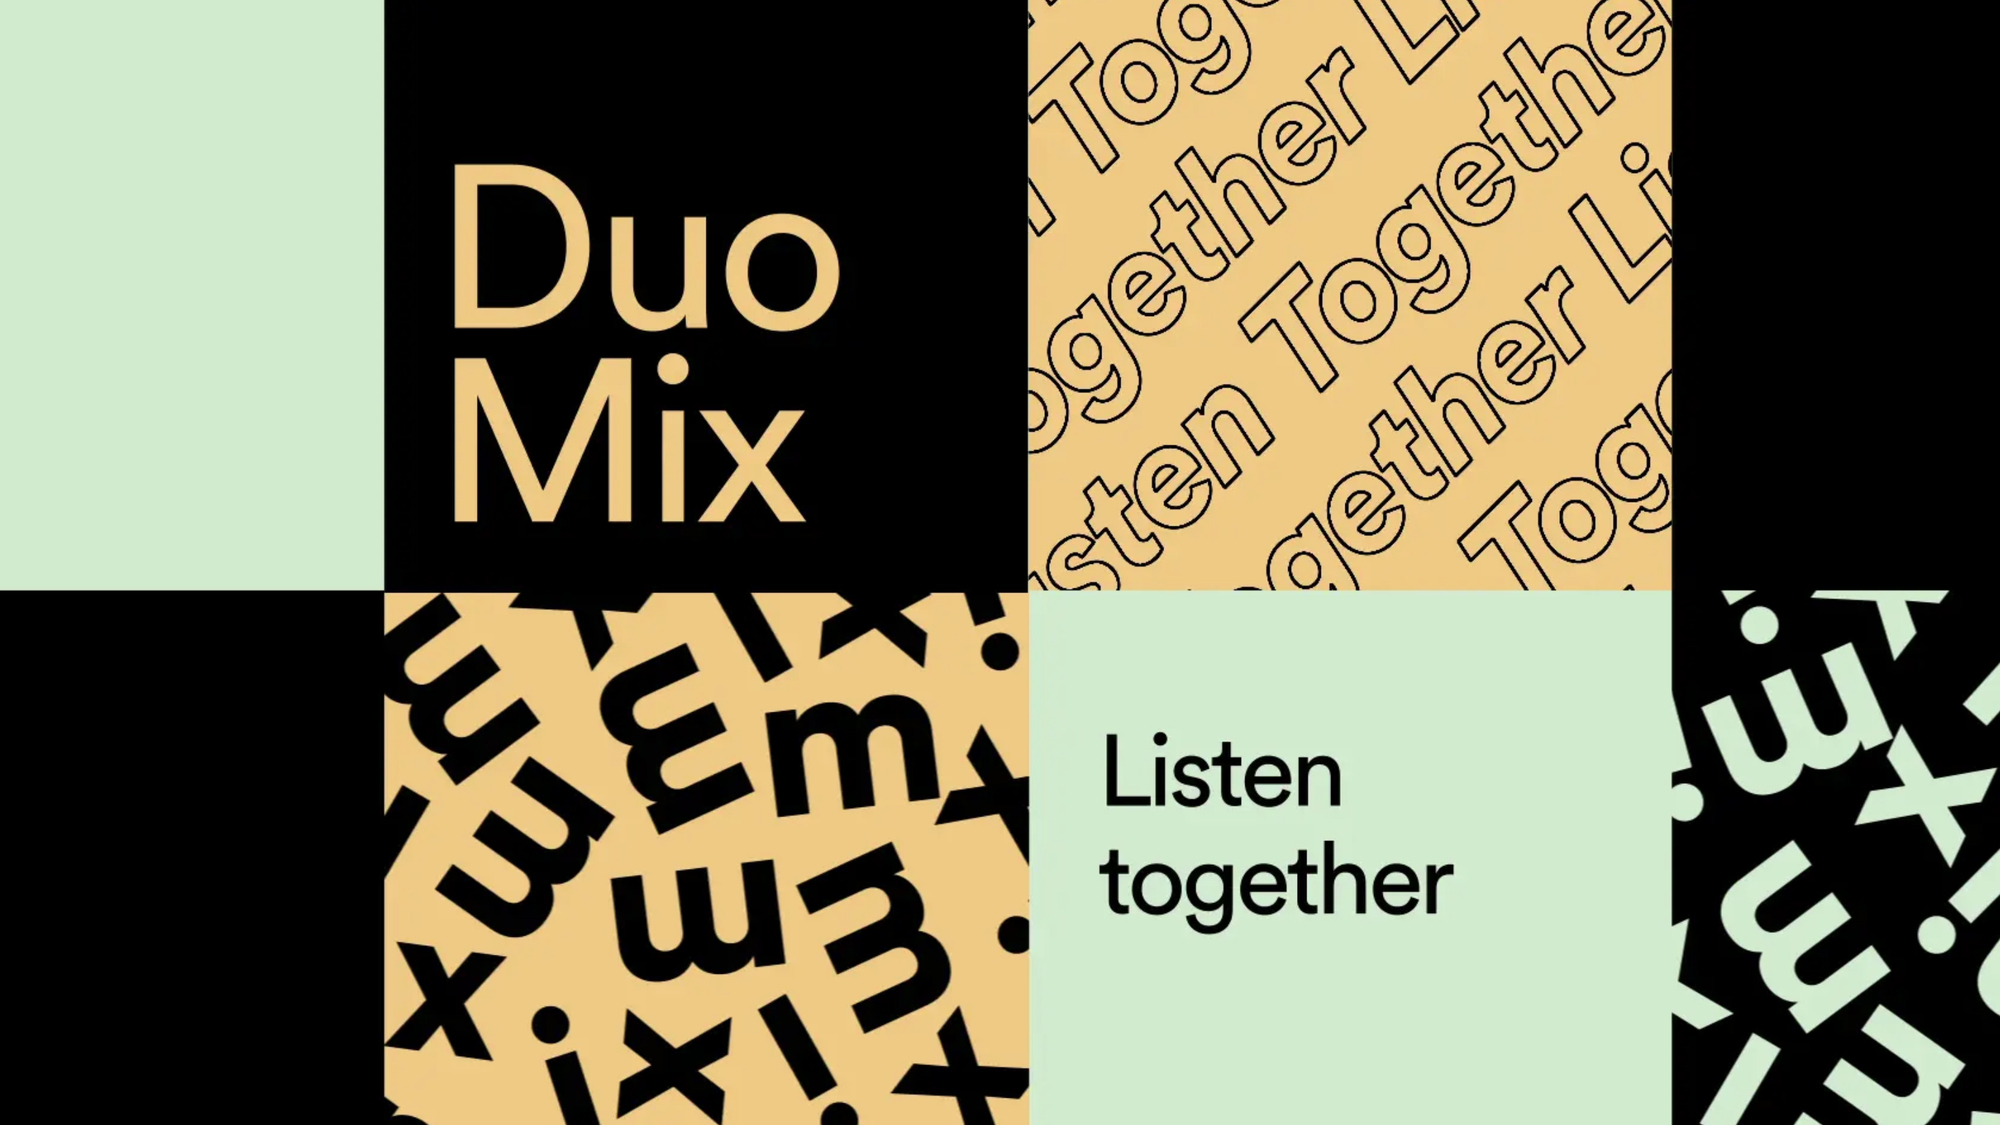 Spotify Mix Duo